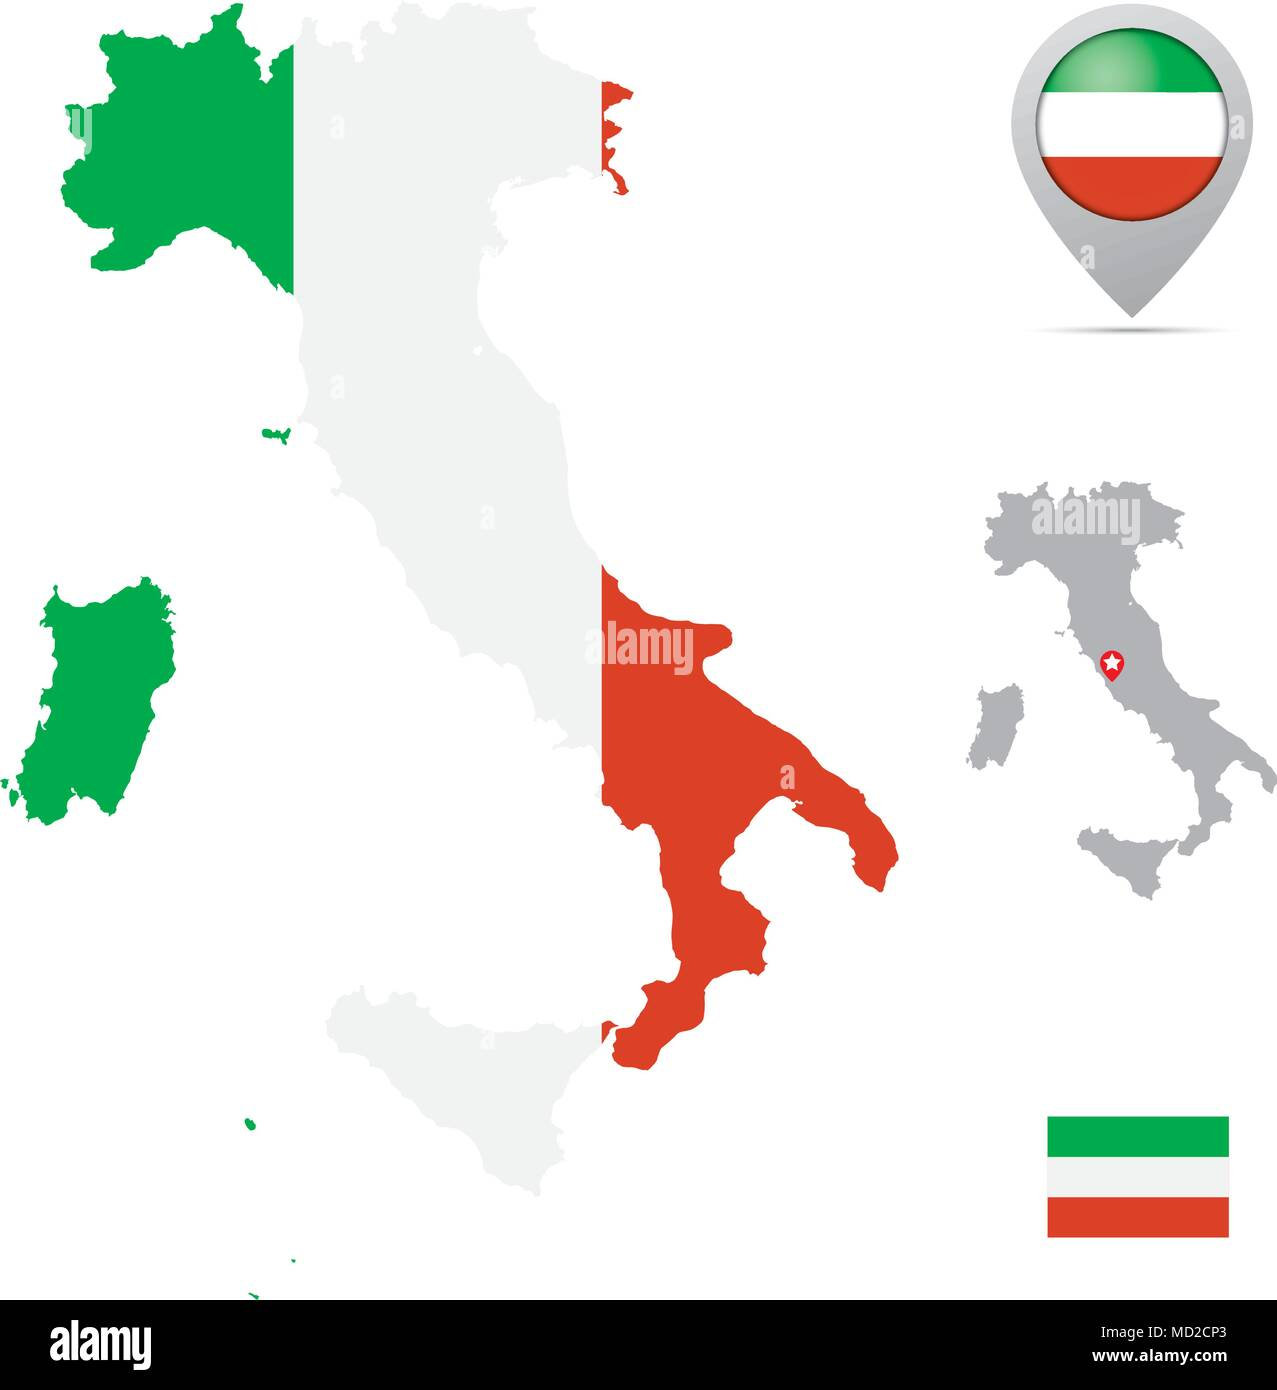 Capital Of Italy Map.Italy Map In National Flag Colors Flag Marker And Location Of